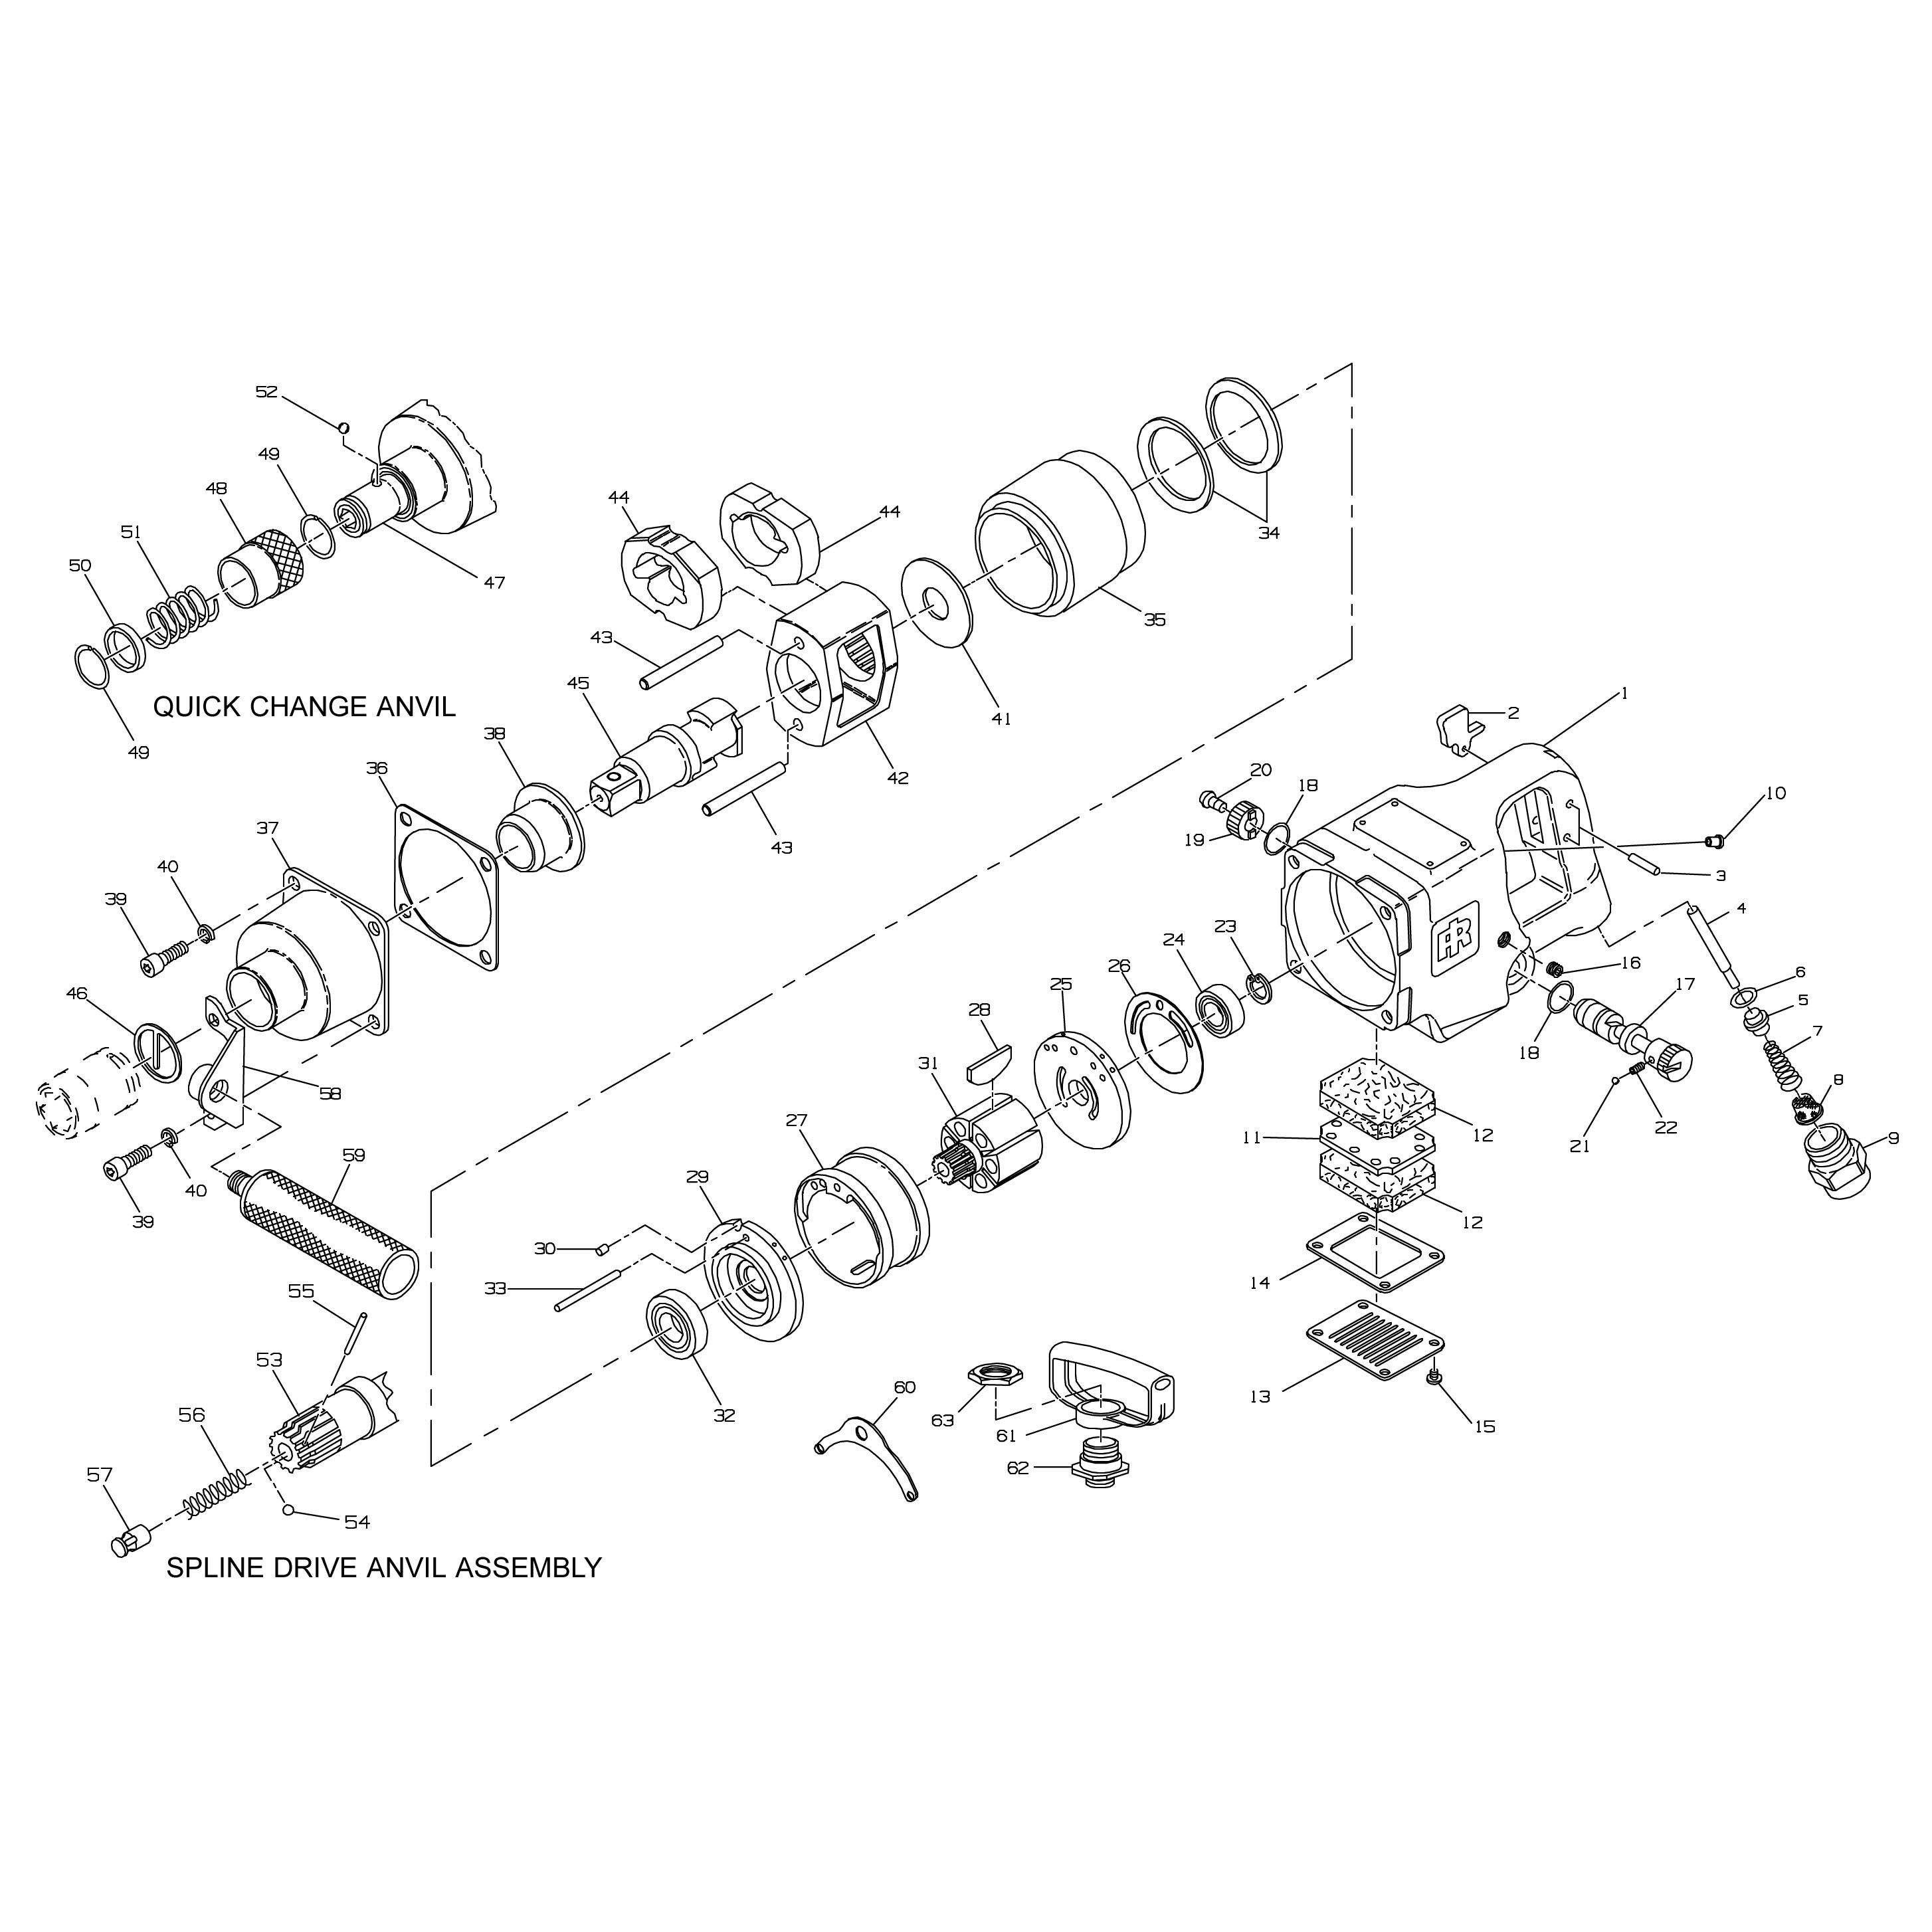 ingersoll rand air compressor wiring diagram dual capacitor fan switch parts electrical